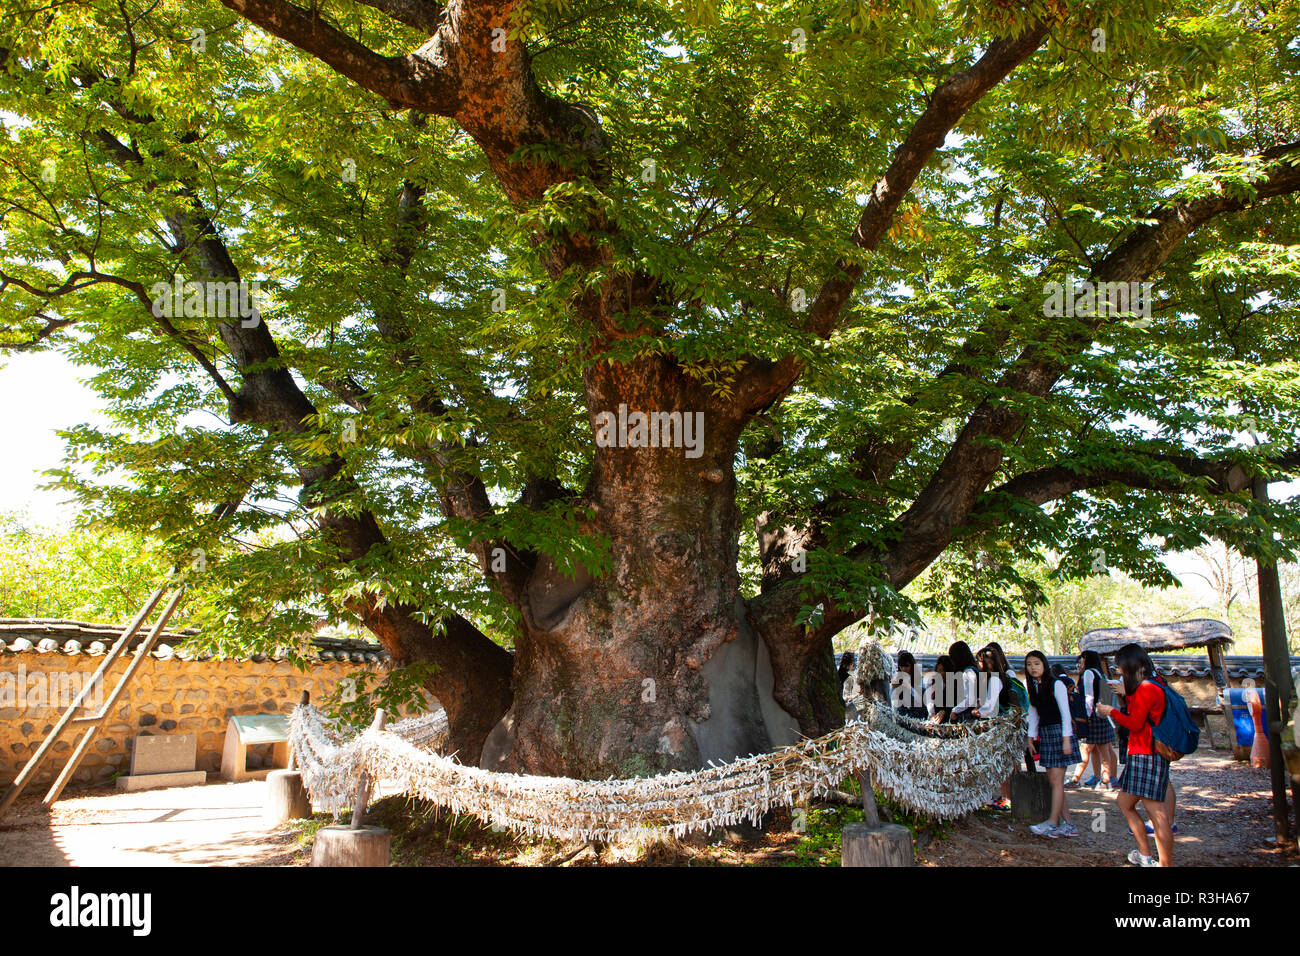 600 year old zelkova tree in Andong City, South Korea. - Stock Image